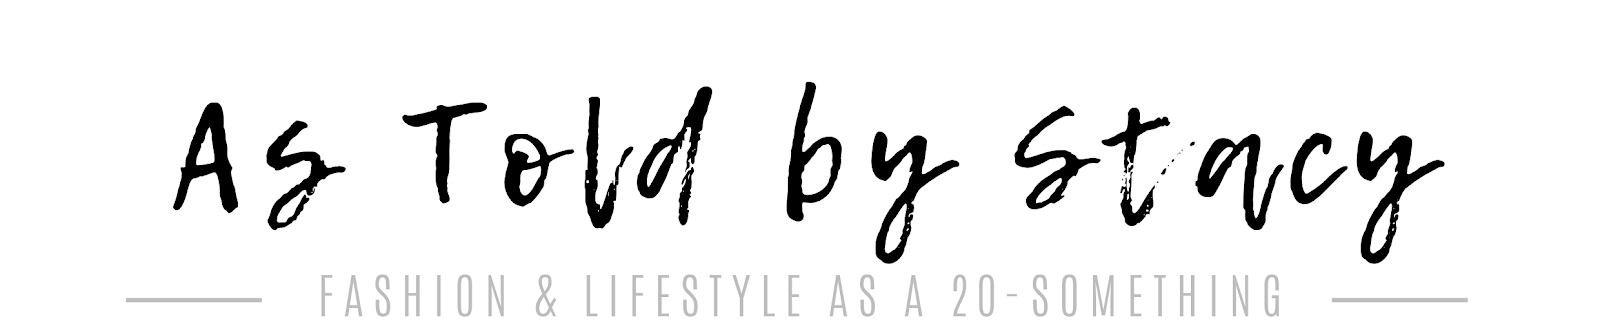 Dallas Fashion & Lifestyle Blog | As Told by Stacy